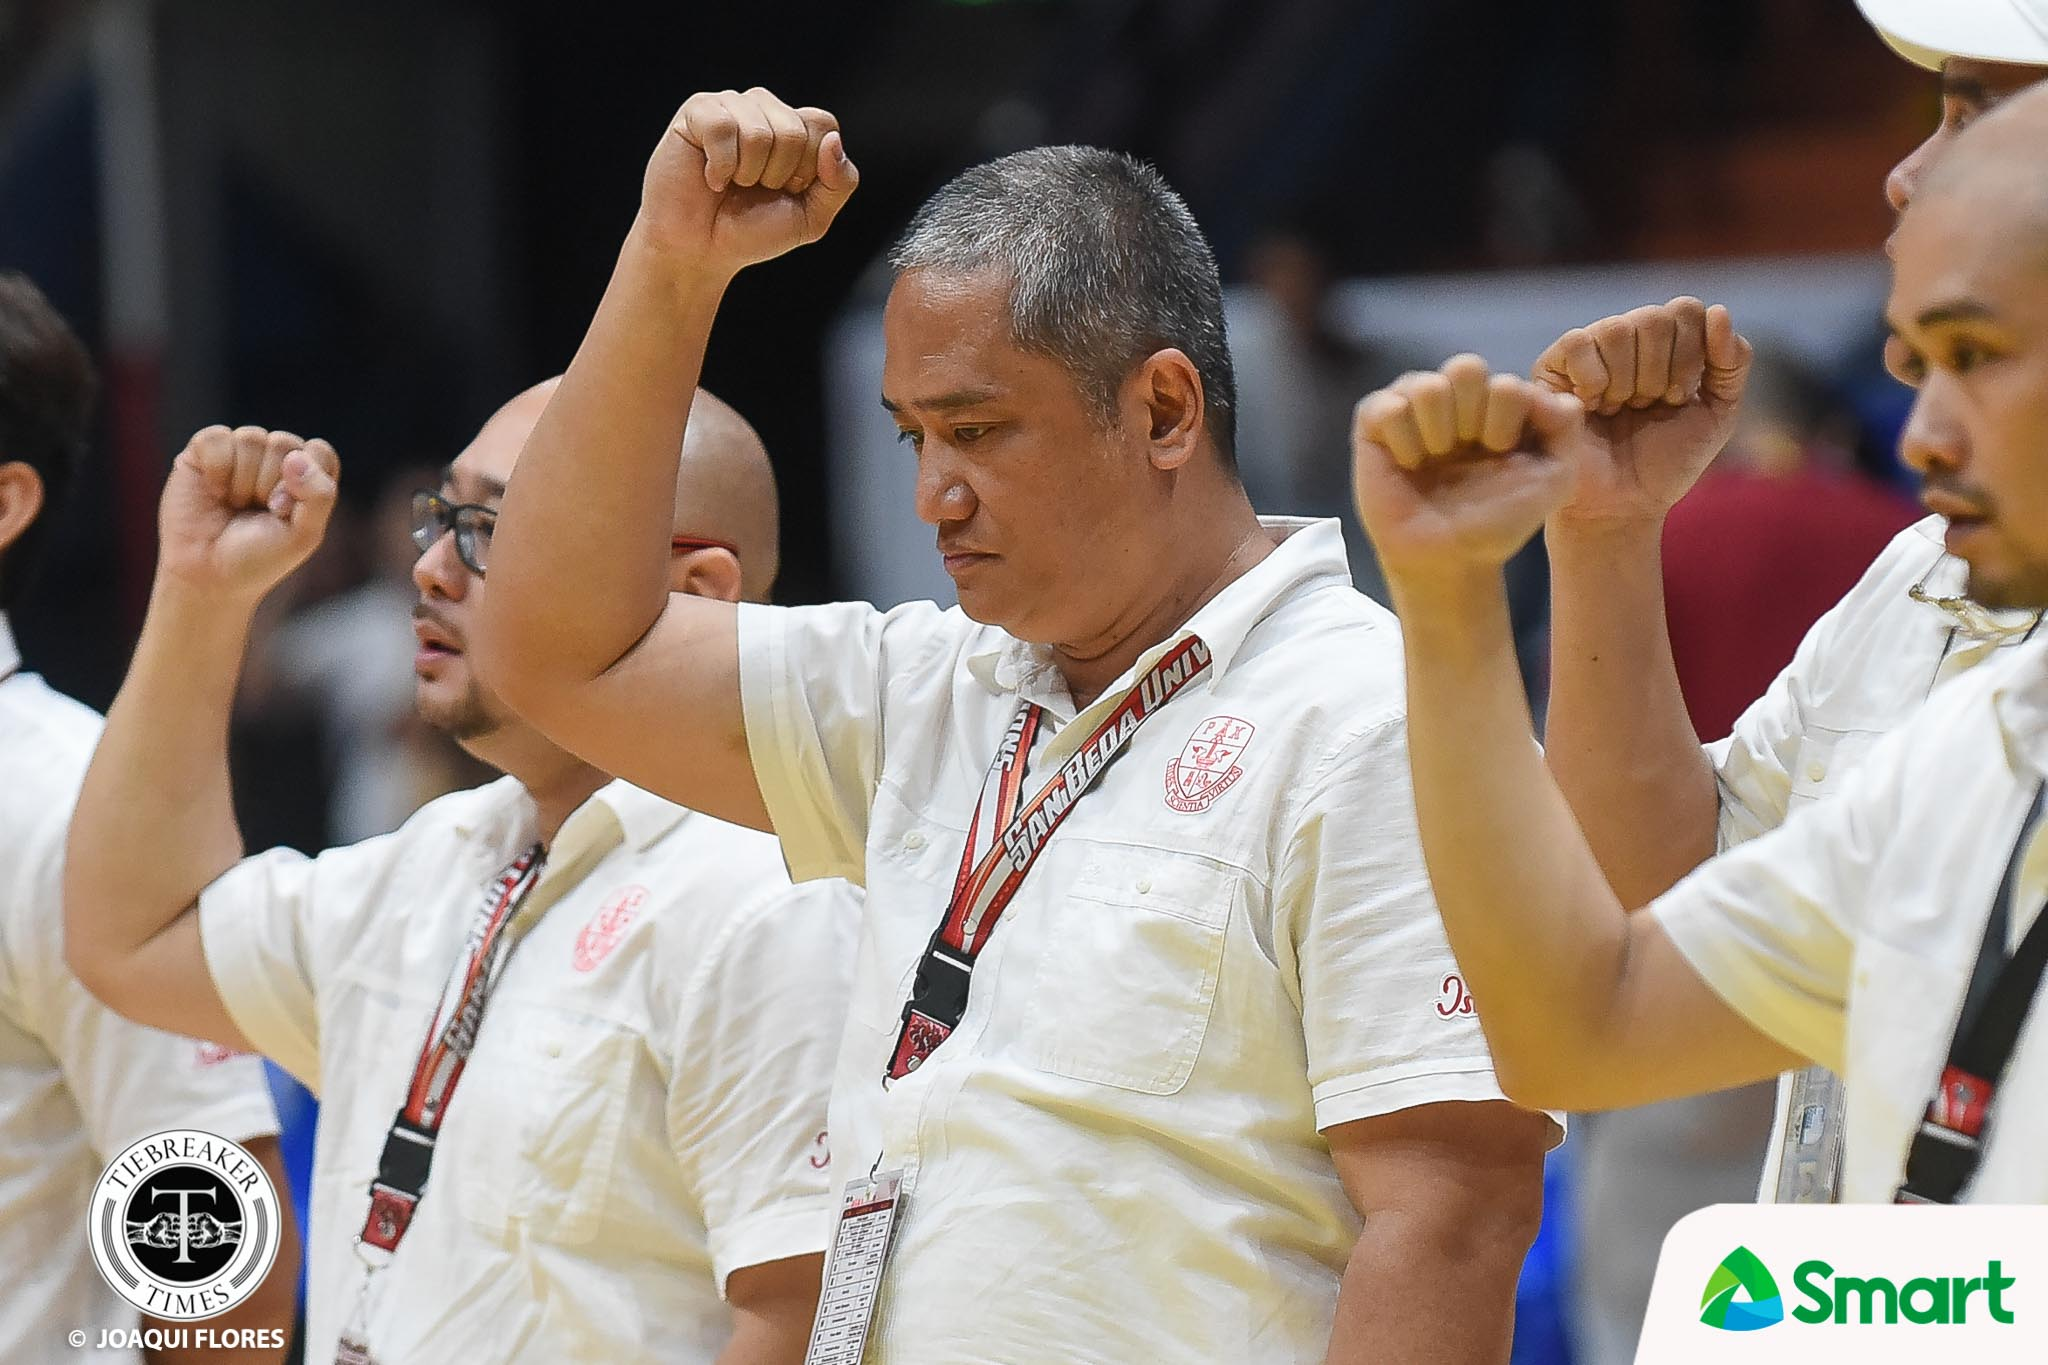 Tiebreaker Times San Beda official gives Boyet Fernandez high praise: 'He's probably second only to Tab Baldwin' Basketball NCAA News SBC  NCAA Season 94 Seniors Basketball NCAA Season 94 Jude Roque Cignal HD Hawkeyes Boyet Fernandez